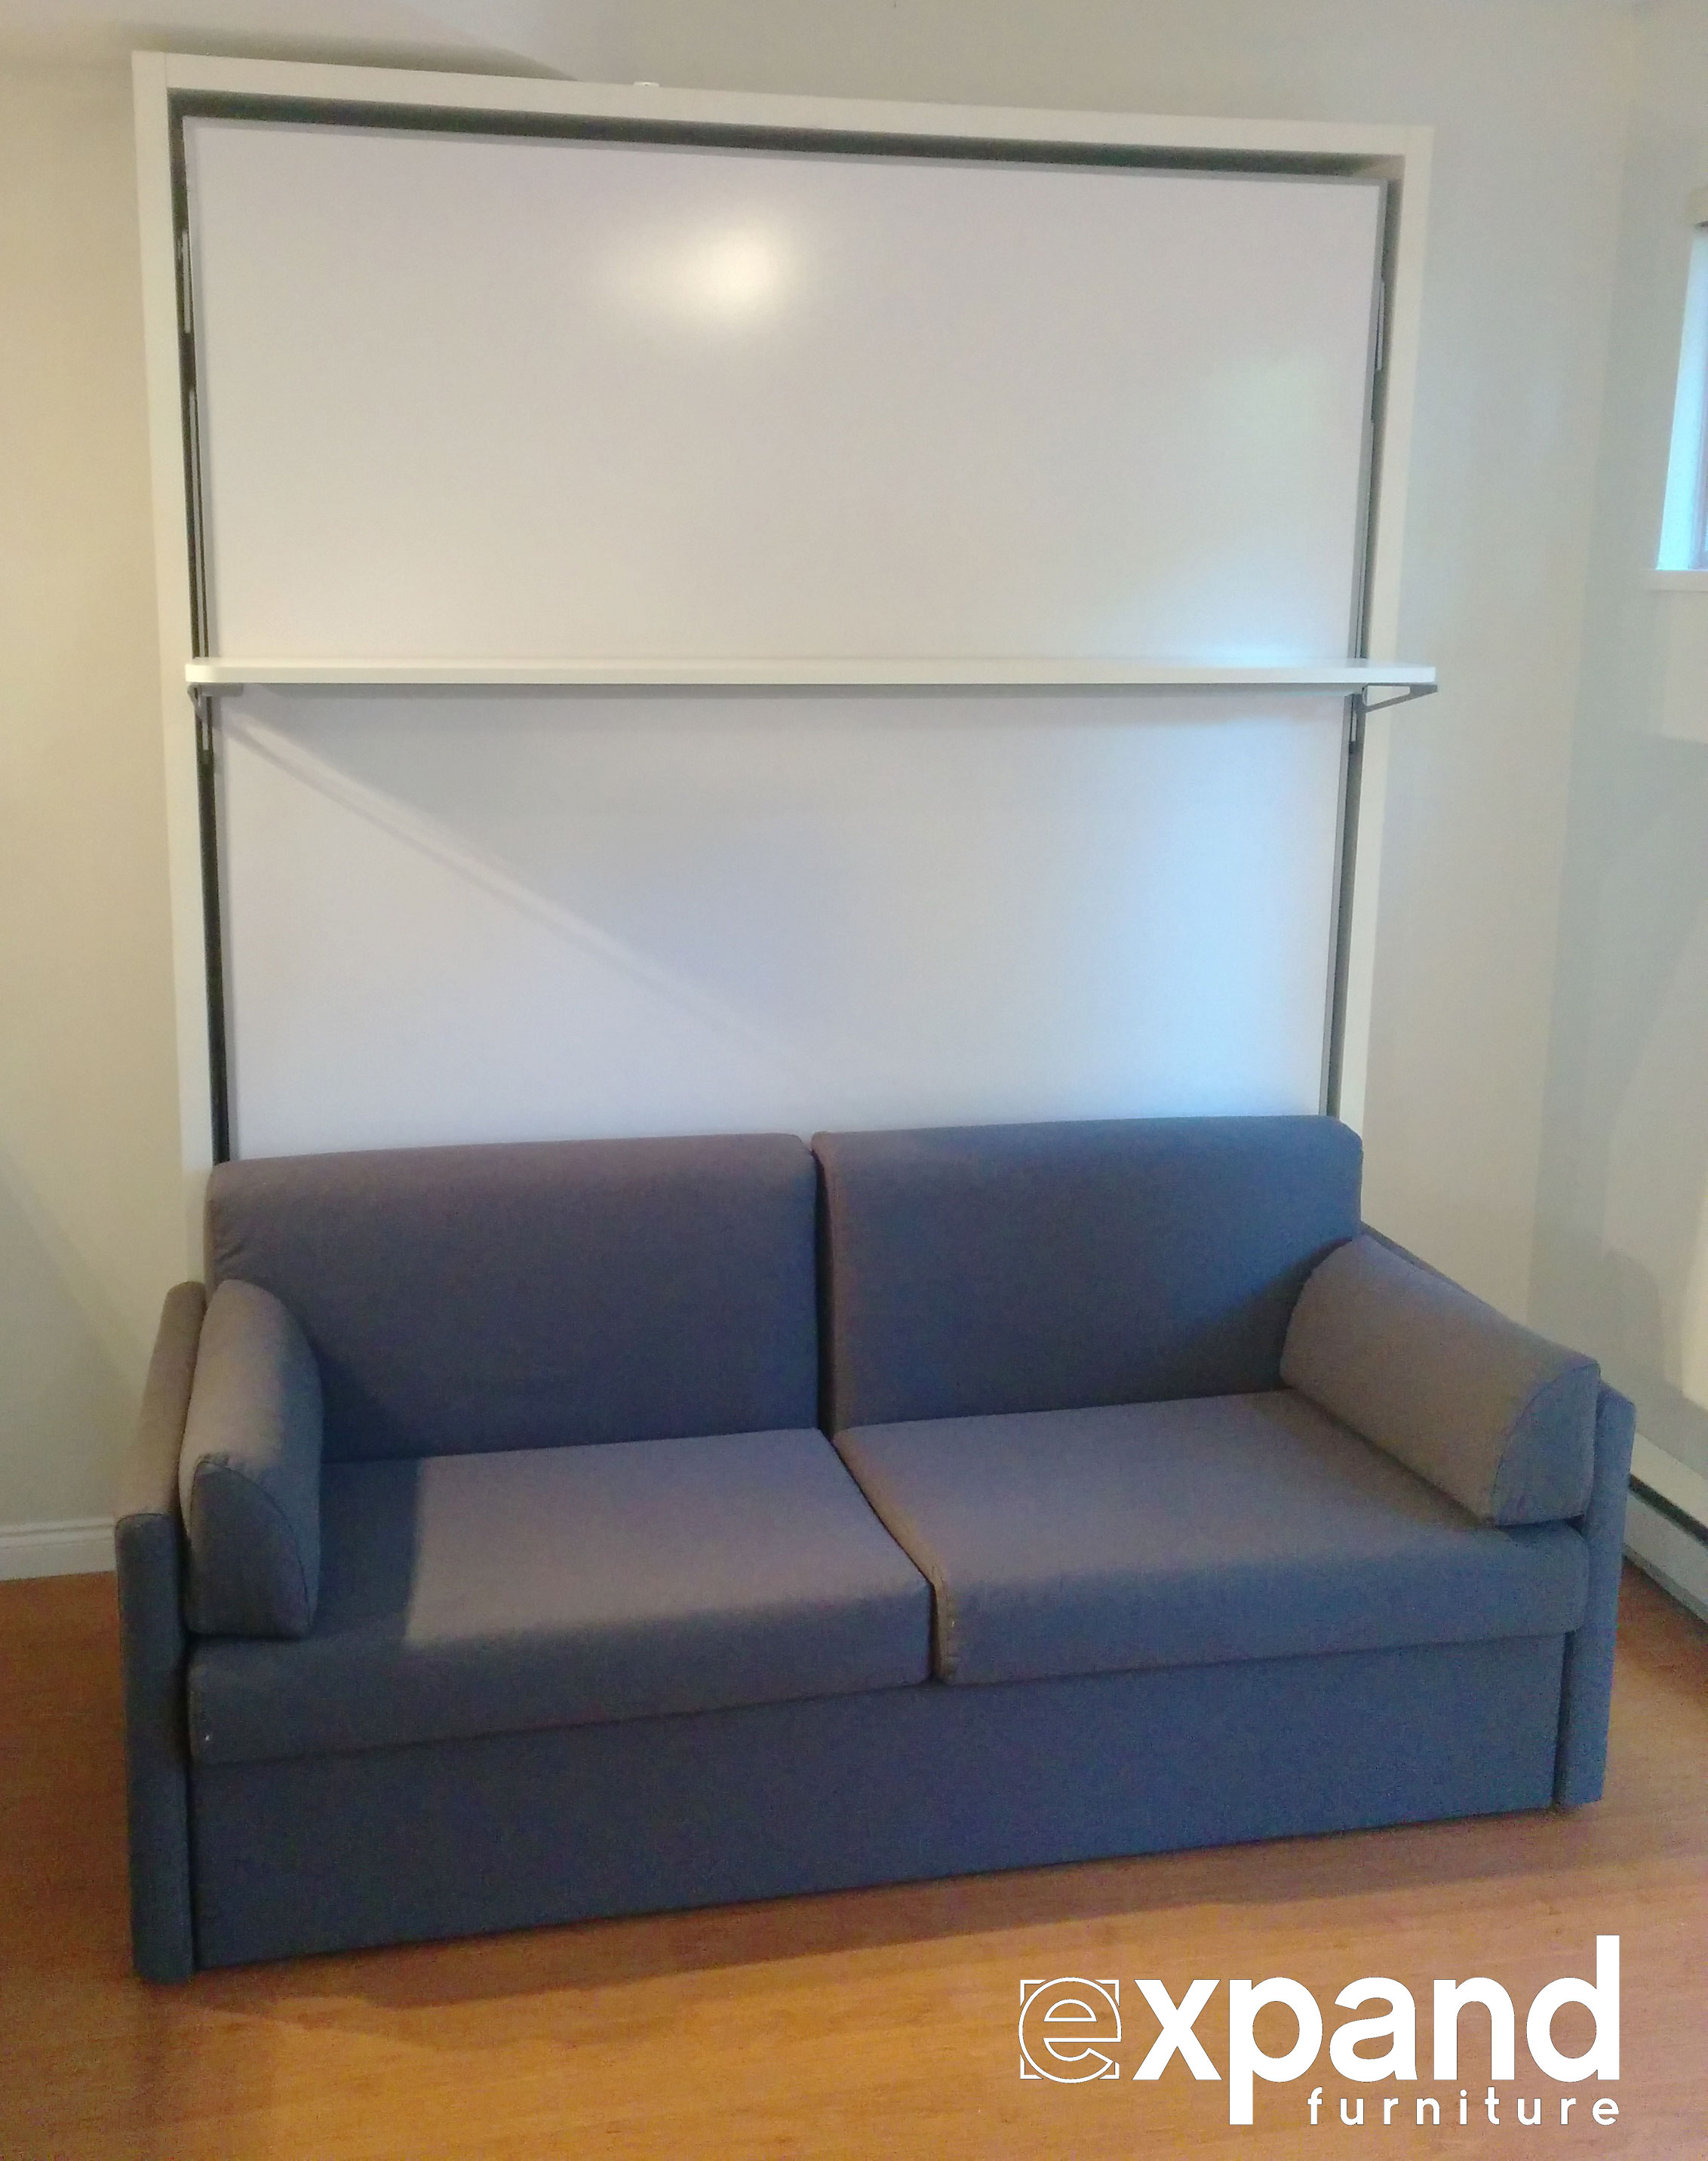 Compatto murphy bed over sofa with floating shelf expand furniture Murphy bed over couch